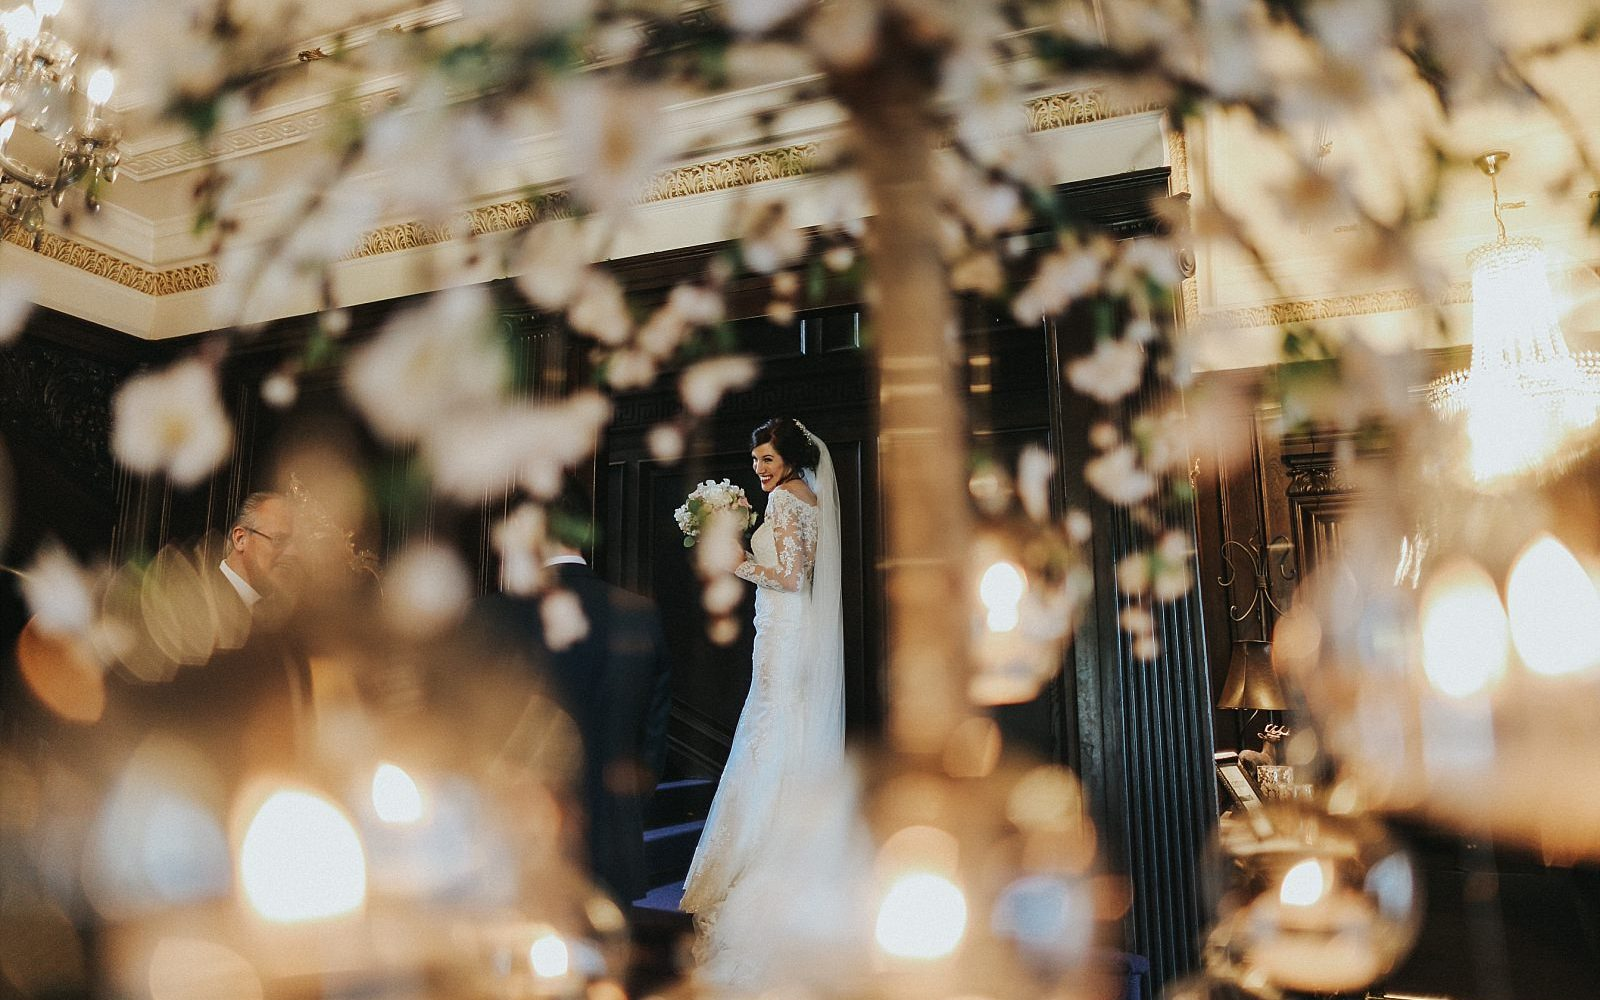 eaves hall wedding photographer captures the bride through the flowers